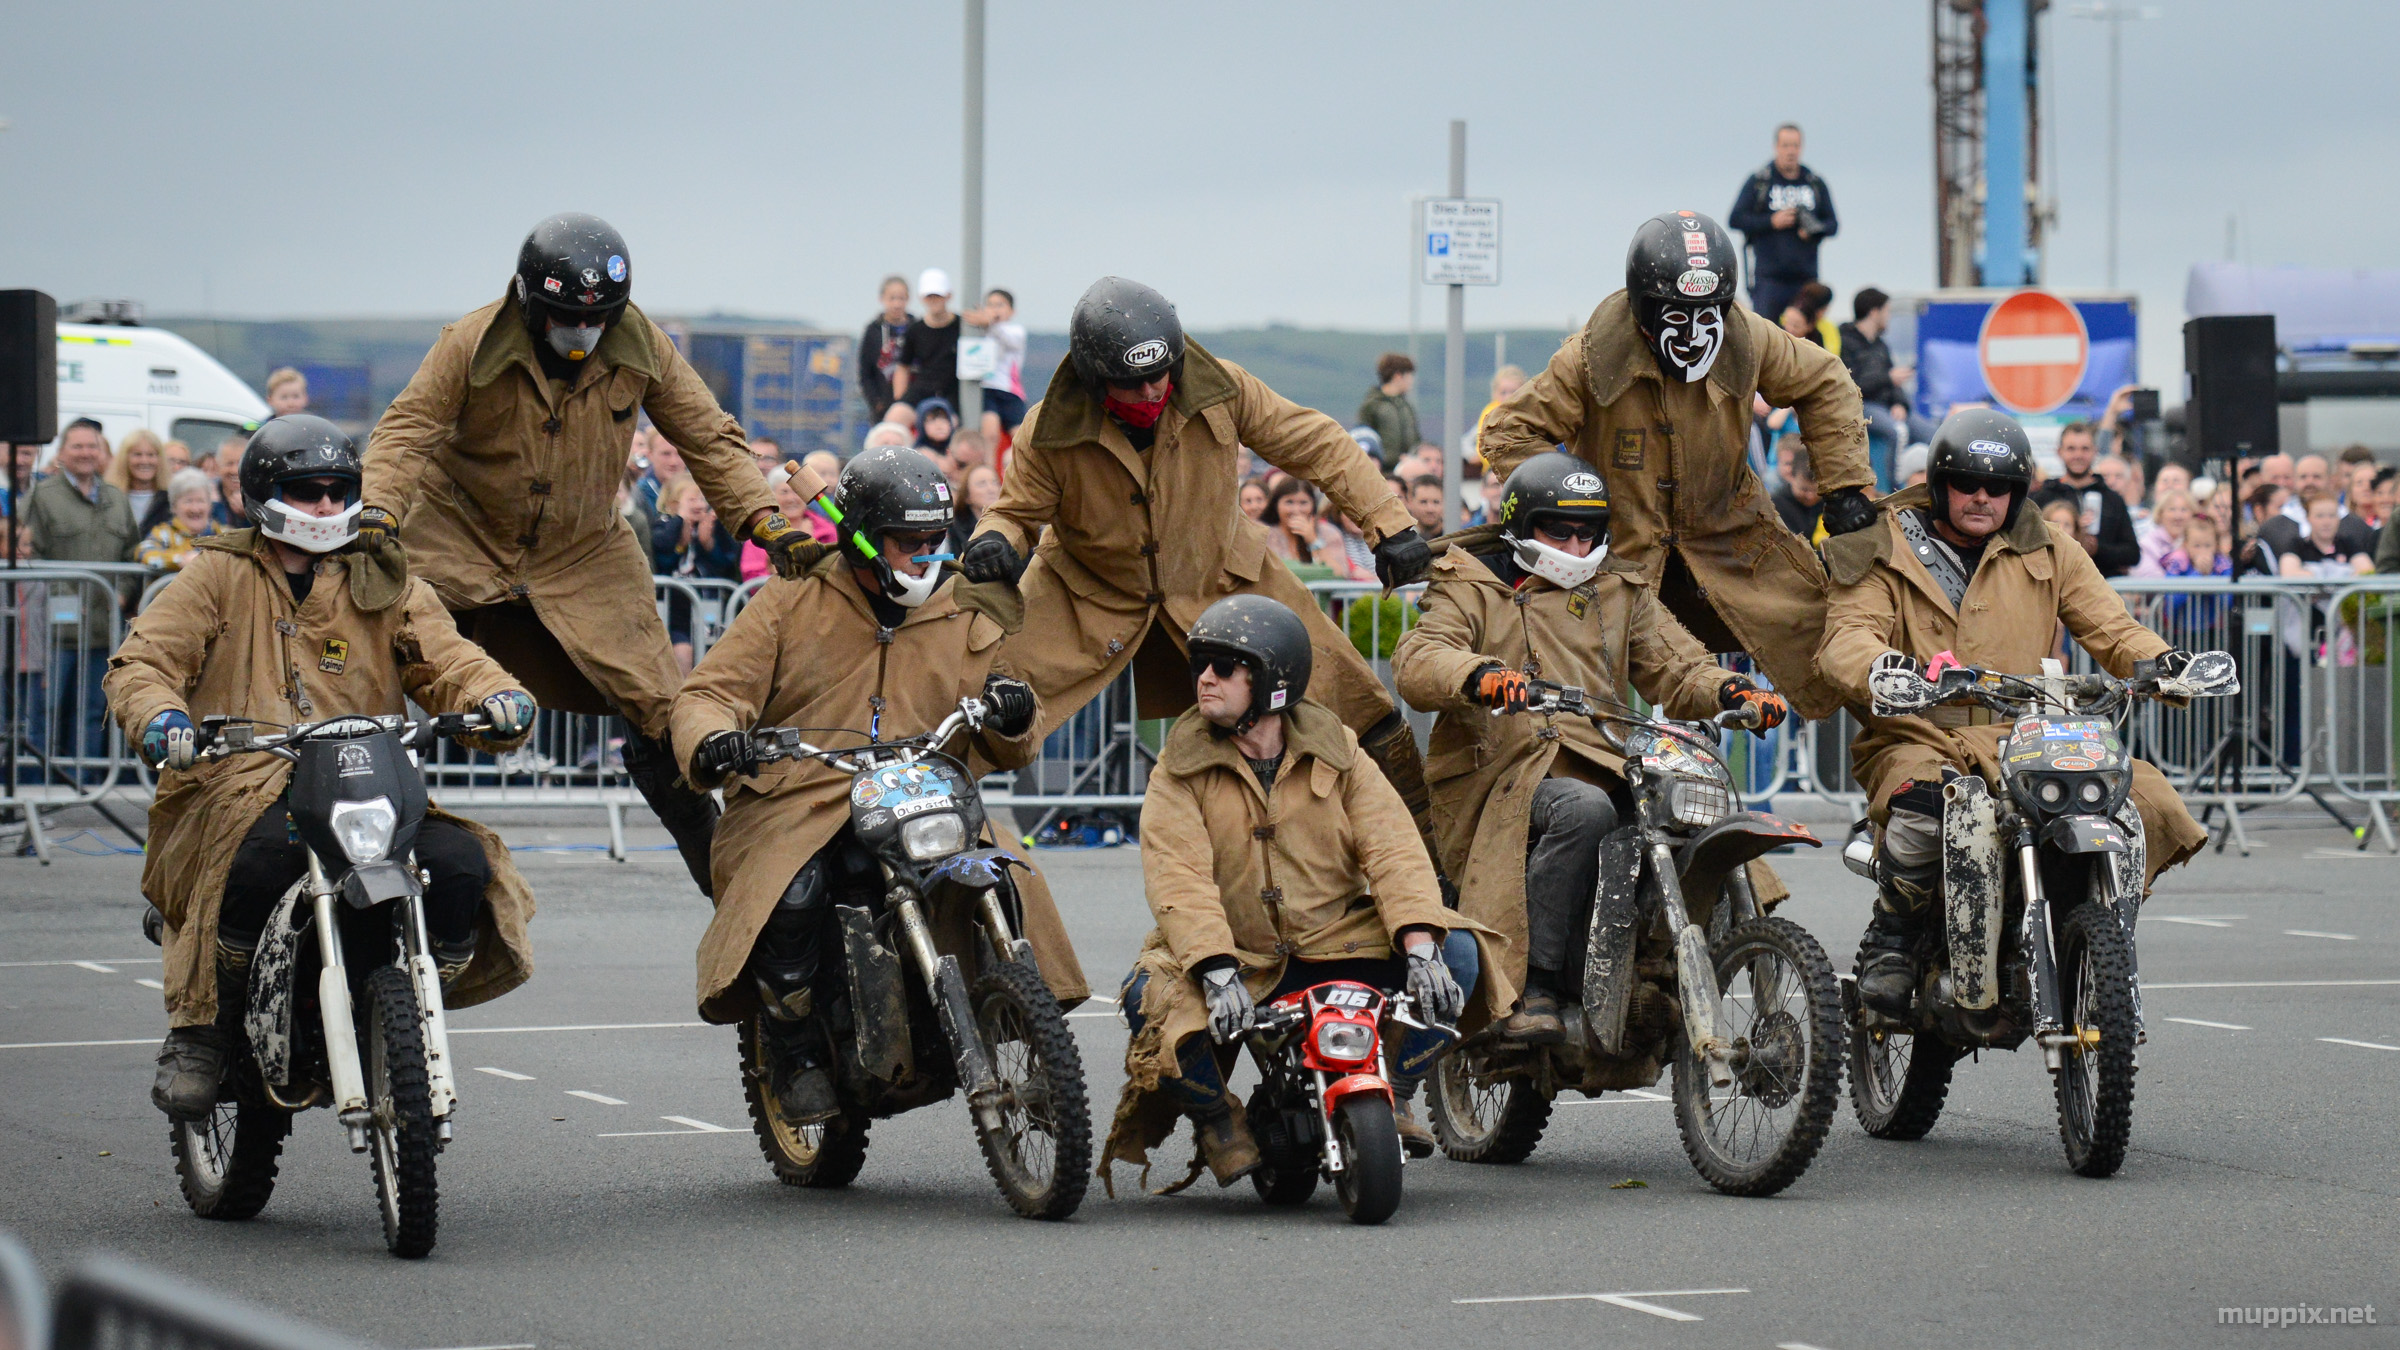 Action shot of the Purple Helmets Motorcycle Display Team